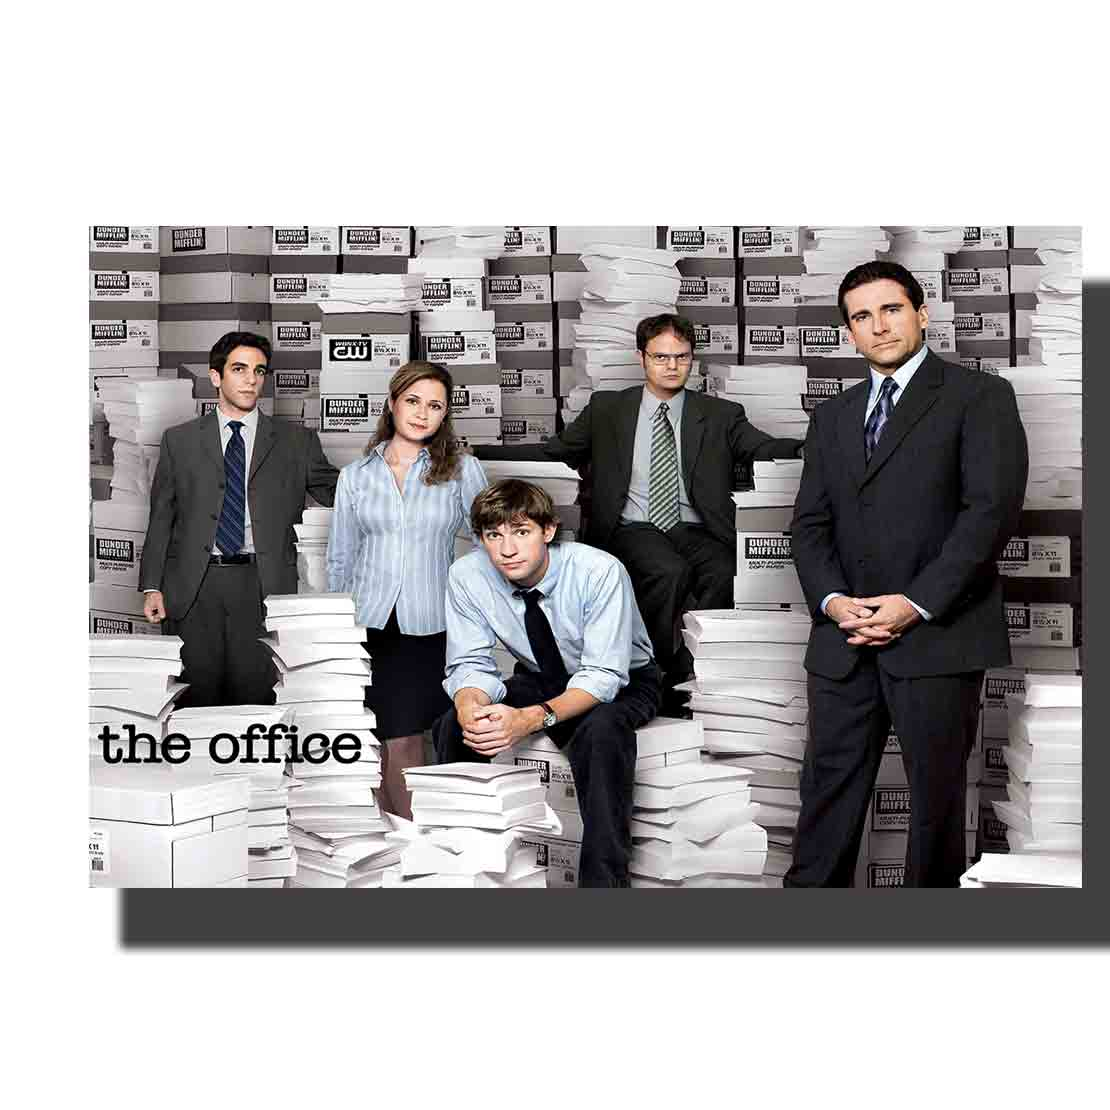 L101 the office 2005 TV Art Poster Decoration Silk 12x18 24x36in Gift Living Room Picture Decor Canvas image